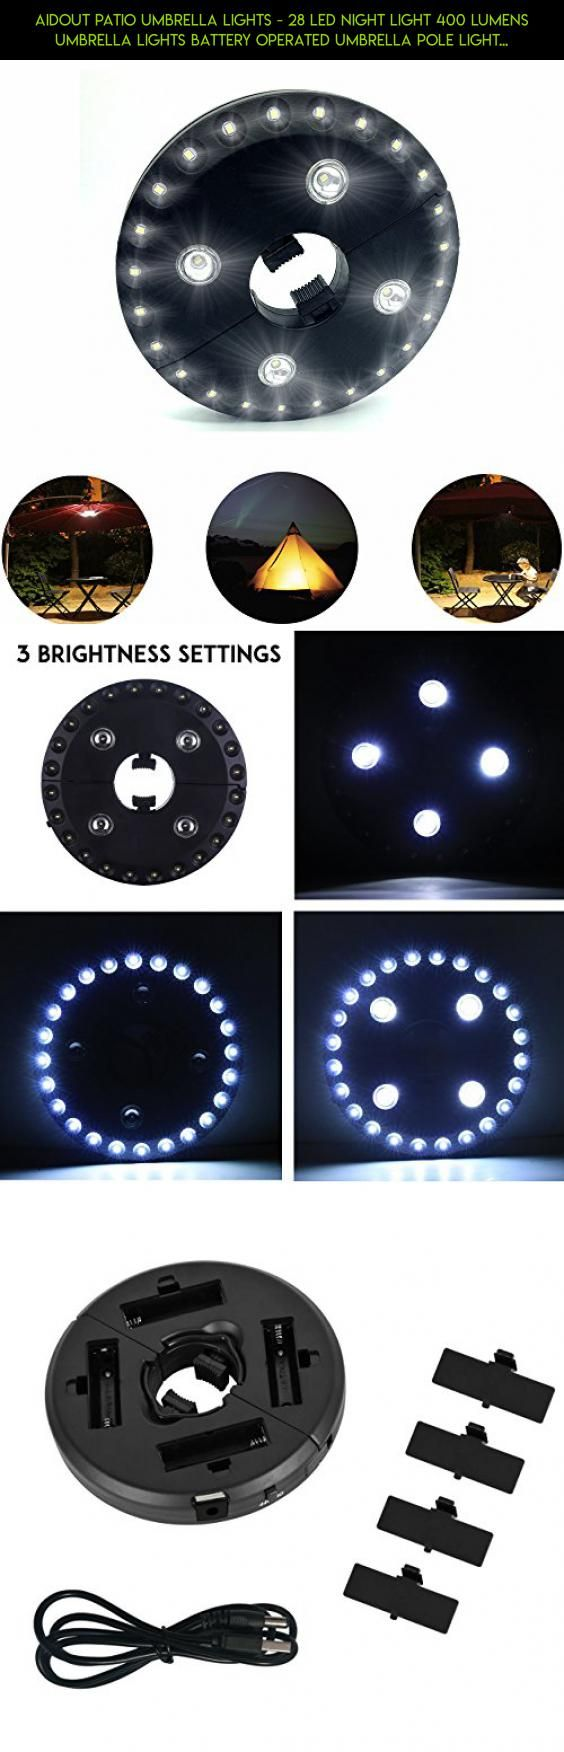 AIDOUT Patio Umbrella Lights   28 LED Night Light 400 Lumens Umbrella  Lights Battery Operated Umbrella Pole Light Outdoor Lighting   3 Lighting  Mode For ...